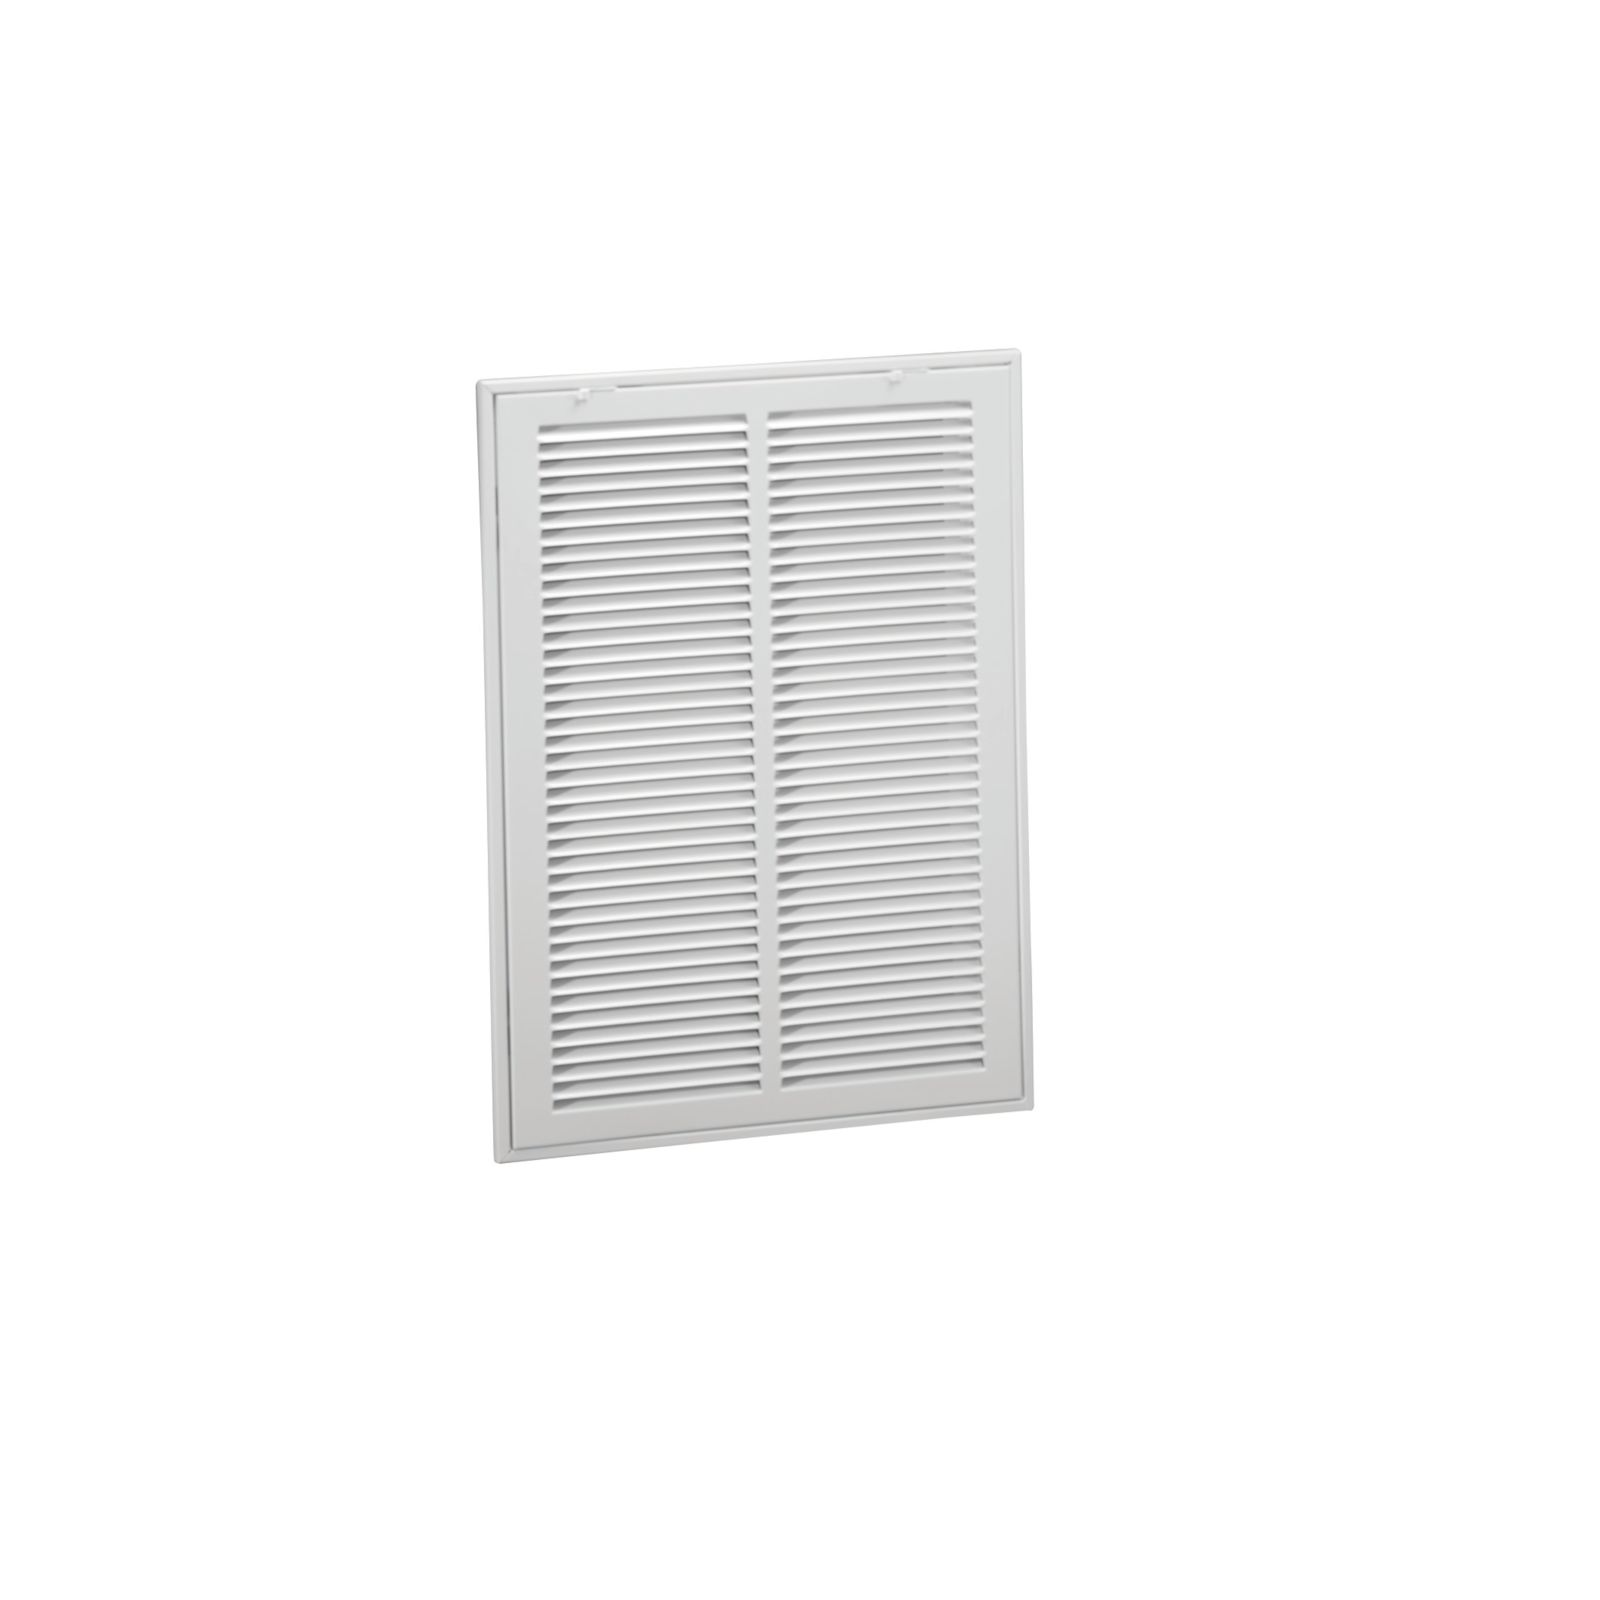 "Hart & Cooley 043505 - #673 Steel Return Air Filter Grille, White Finish, 14"" X 20"""